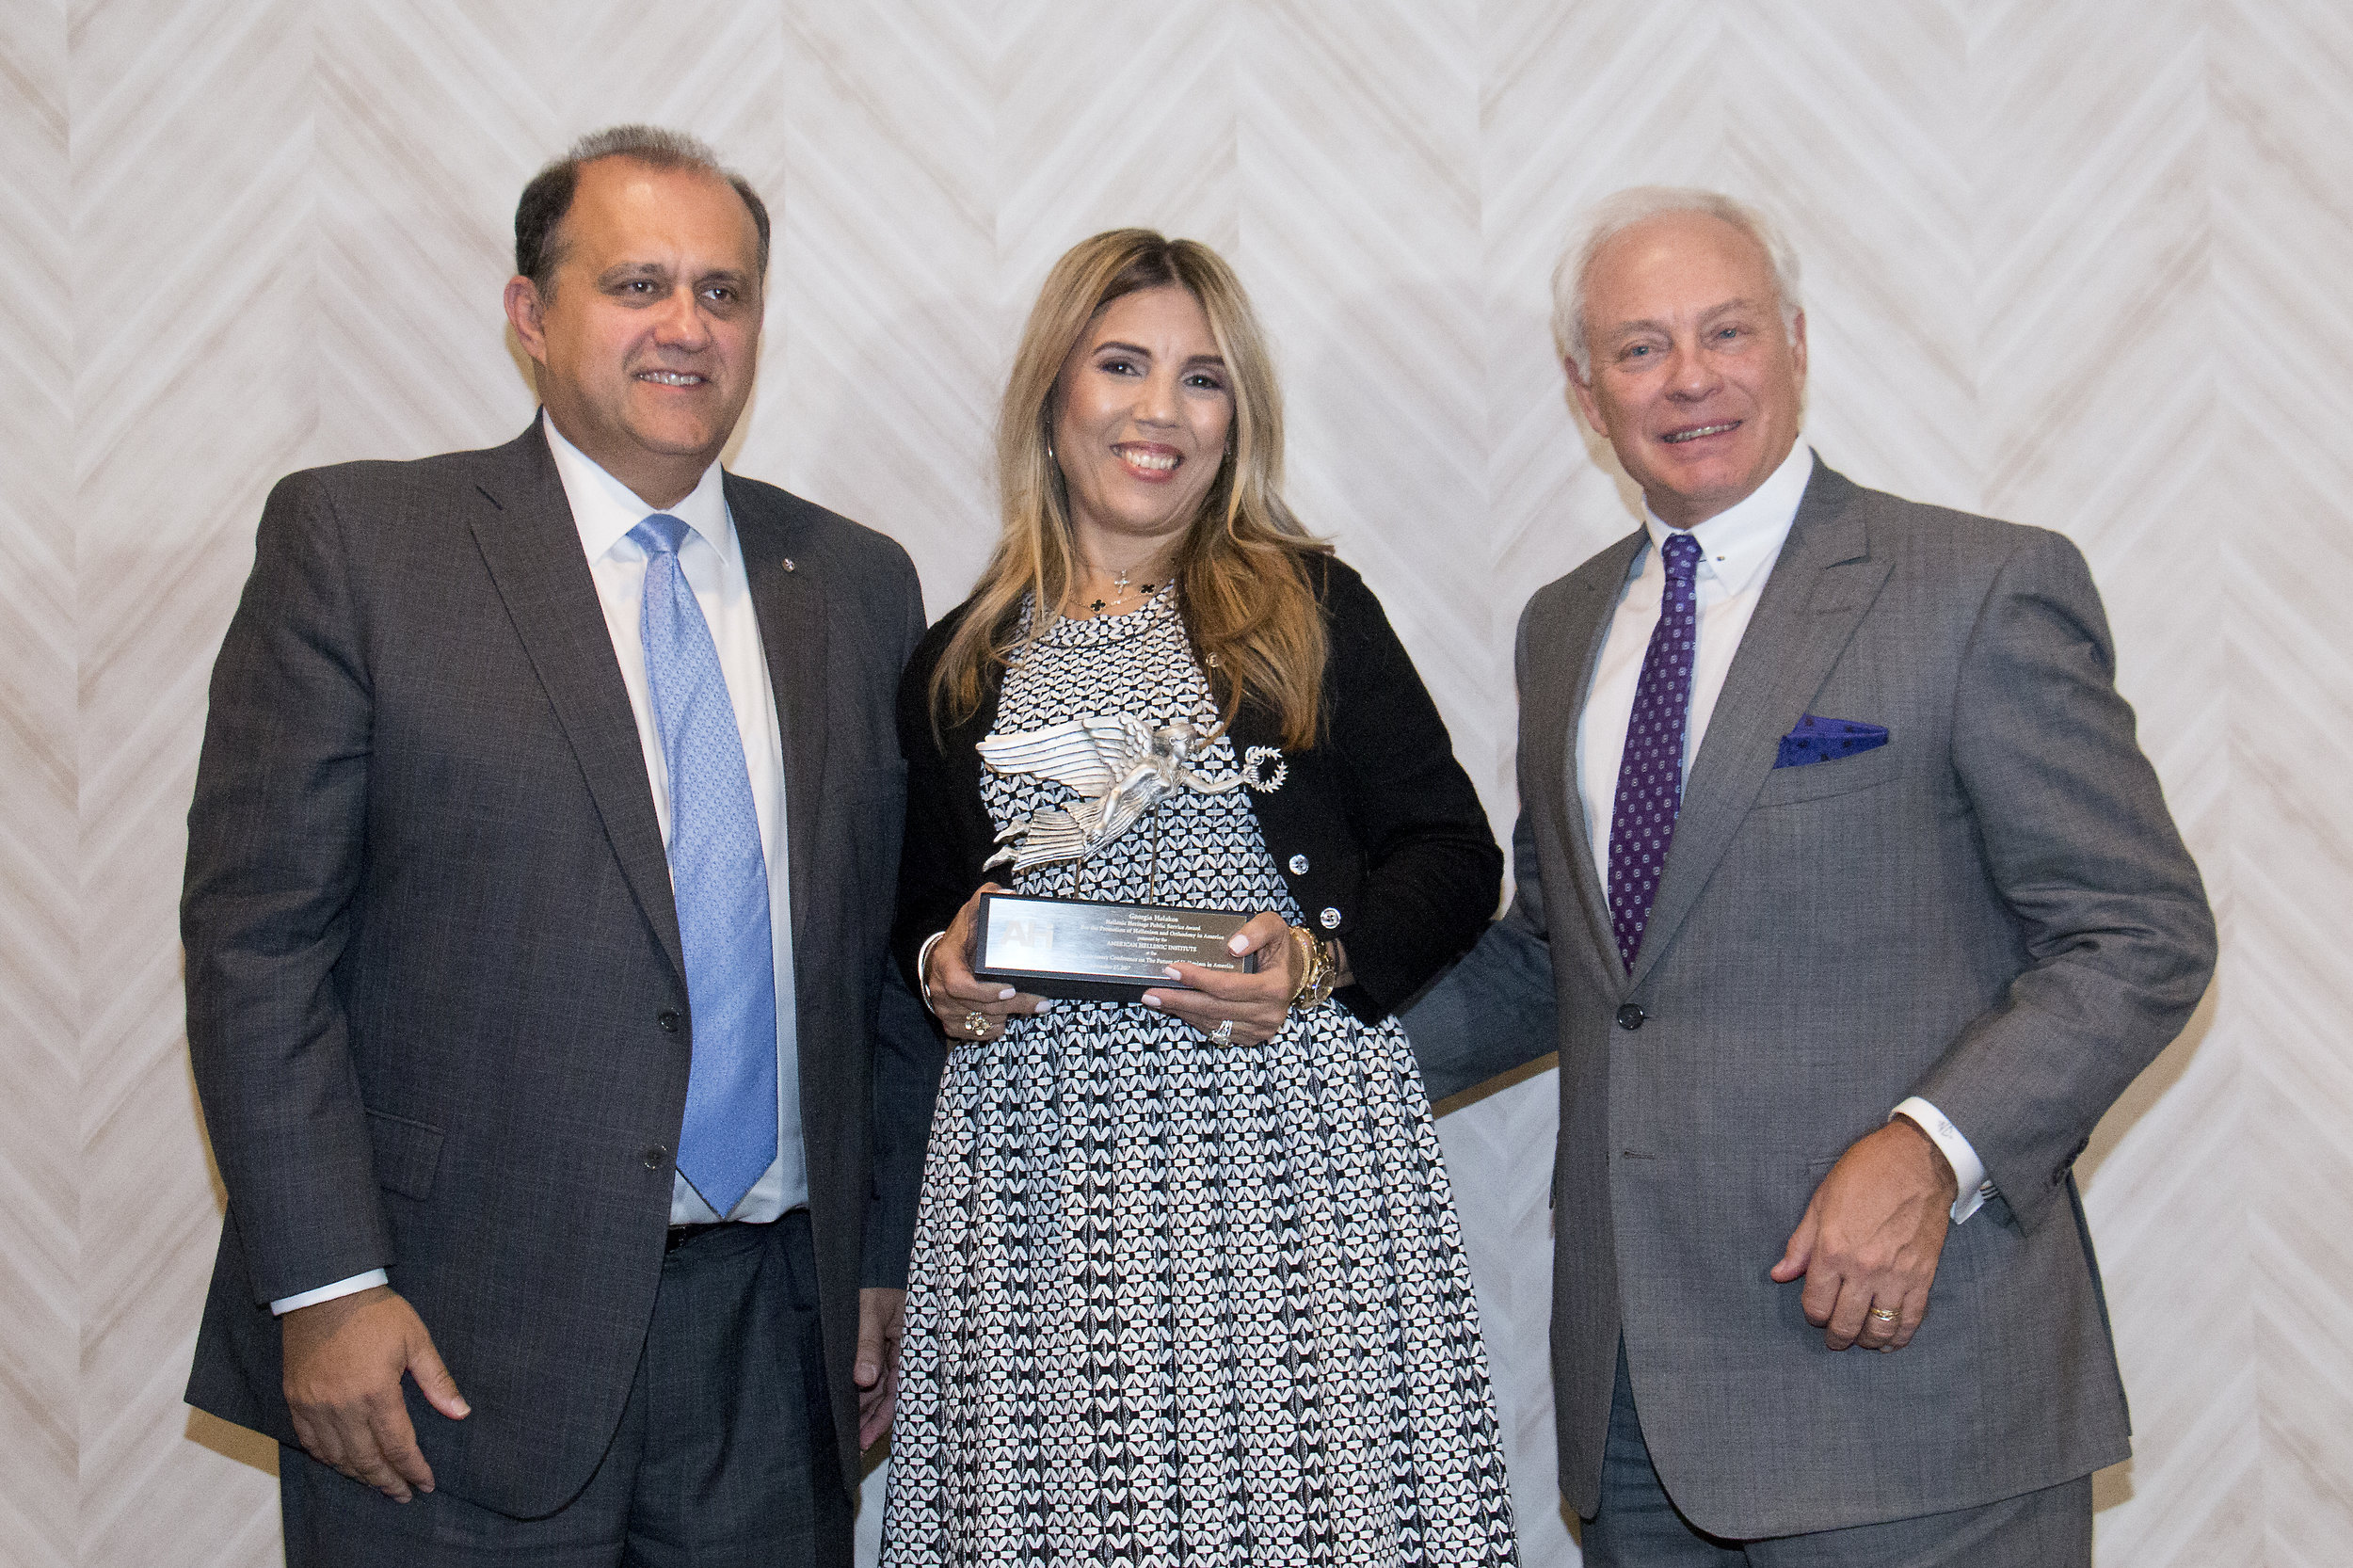 Nick Larigakis, President of AHI and Nick Chimicles, Conference Chairman present Georgia Halakos with the AHI Hellenic Heritage Public Service Award for the Promotion of Hellenism and Orthodoxy in America.